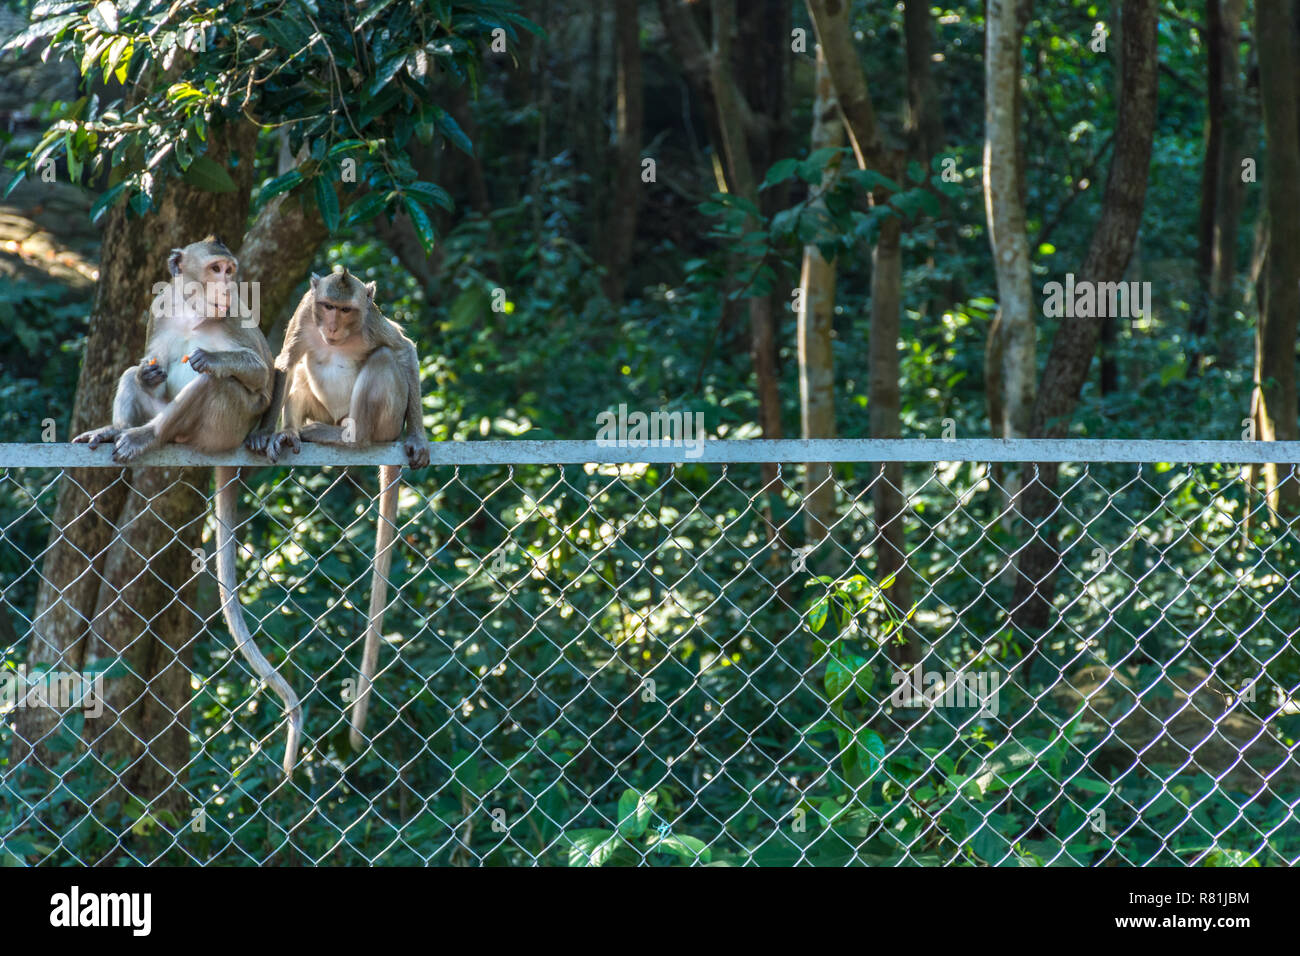 2 Macaques monkeys sat on top of a wire fence at the edge of a forest. - Stock Image